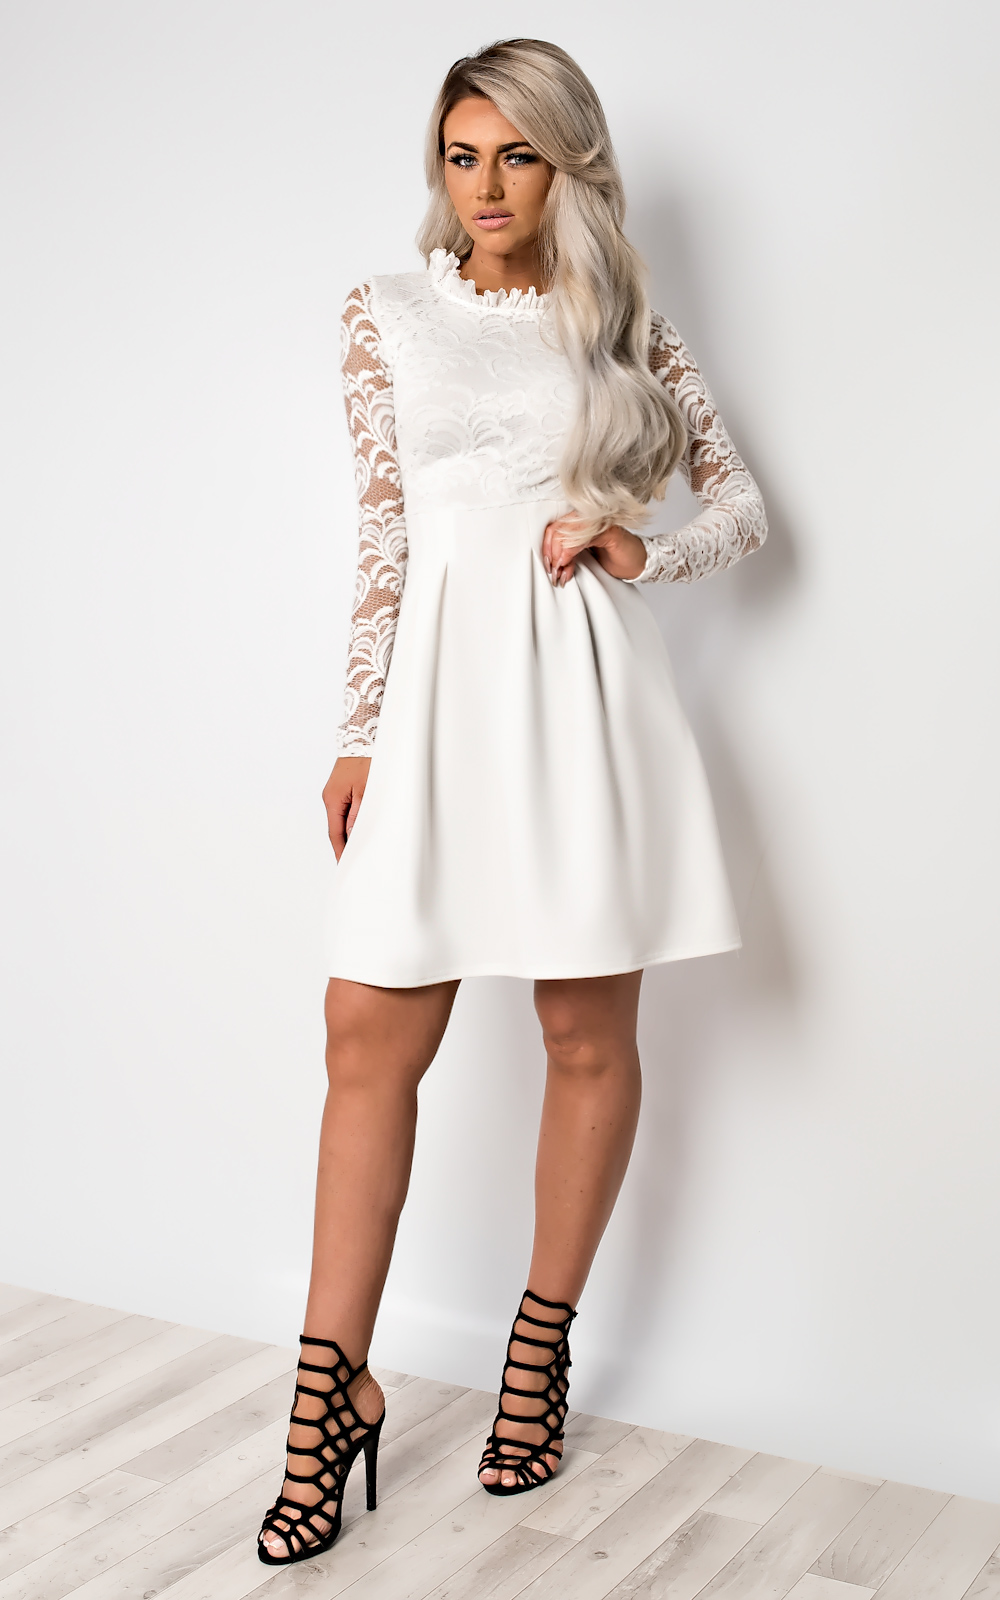 fe9bae0b3798 IKRUSH Womens Nika Lace Skater Dress White UK 8